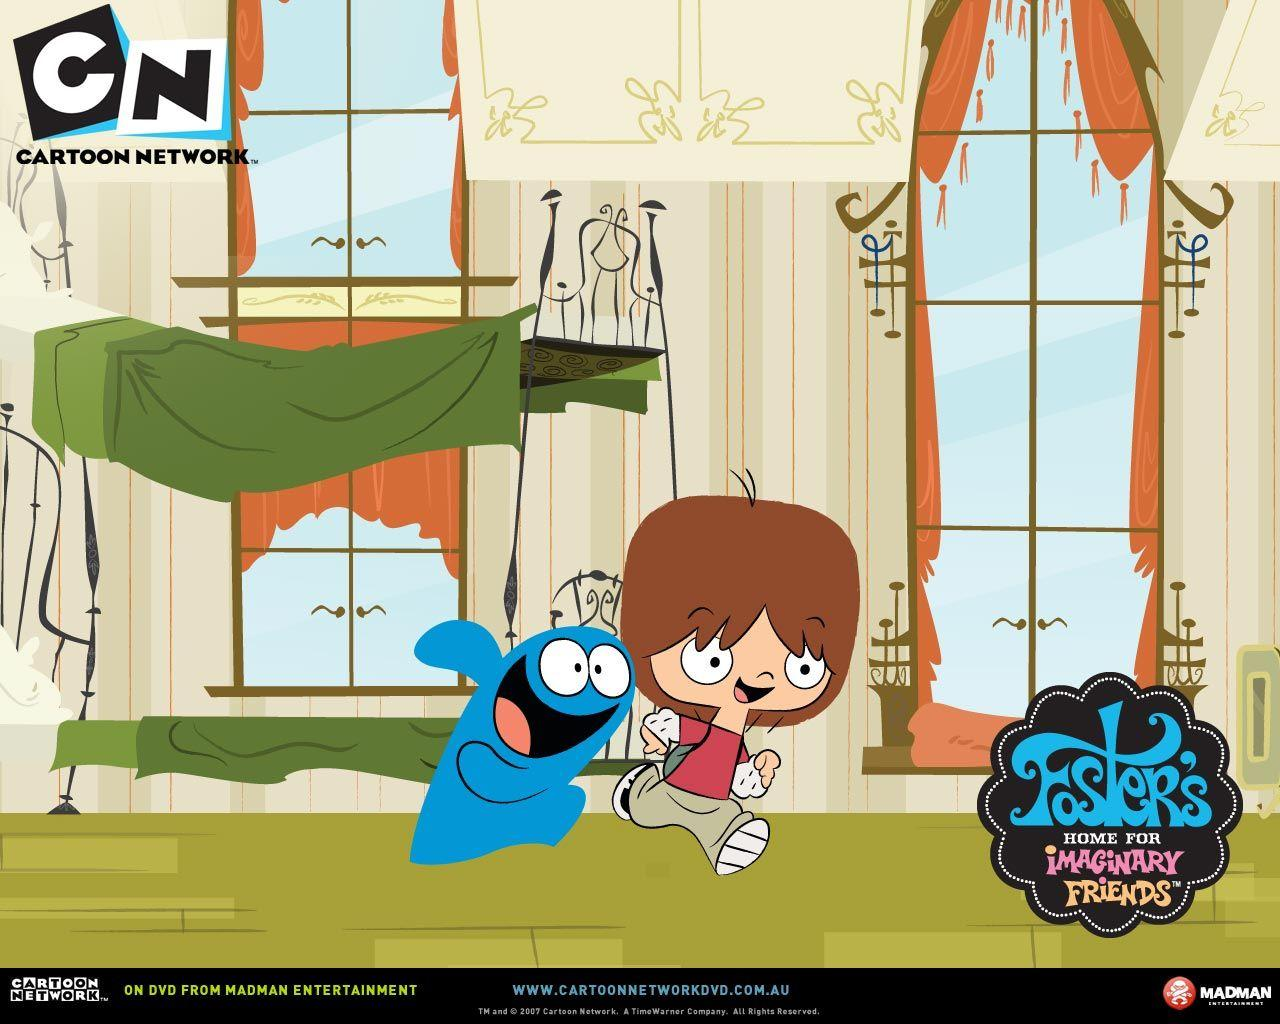 Fosters home for imaginary friends wallpapers wallpaper cave for Wallpaper home cartoon